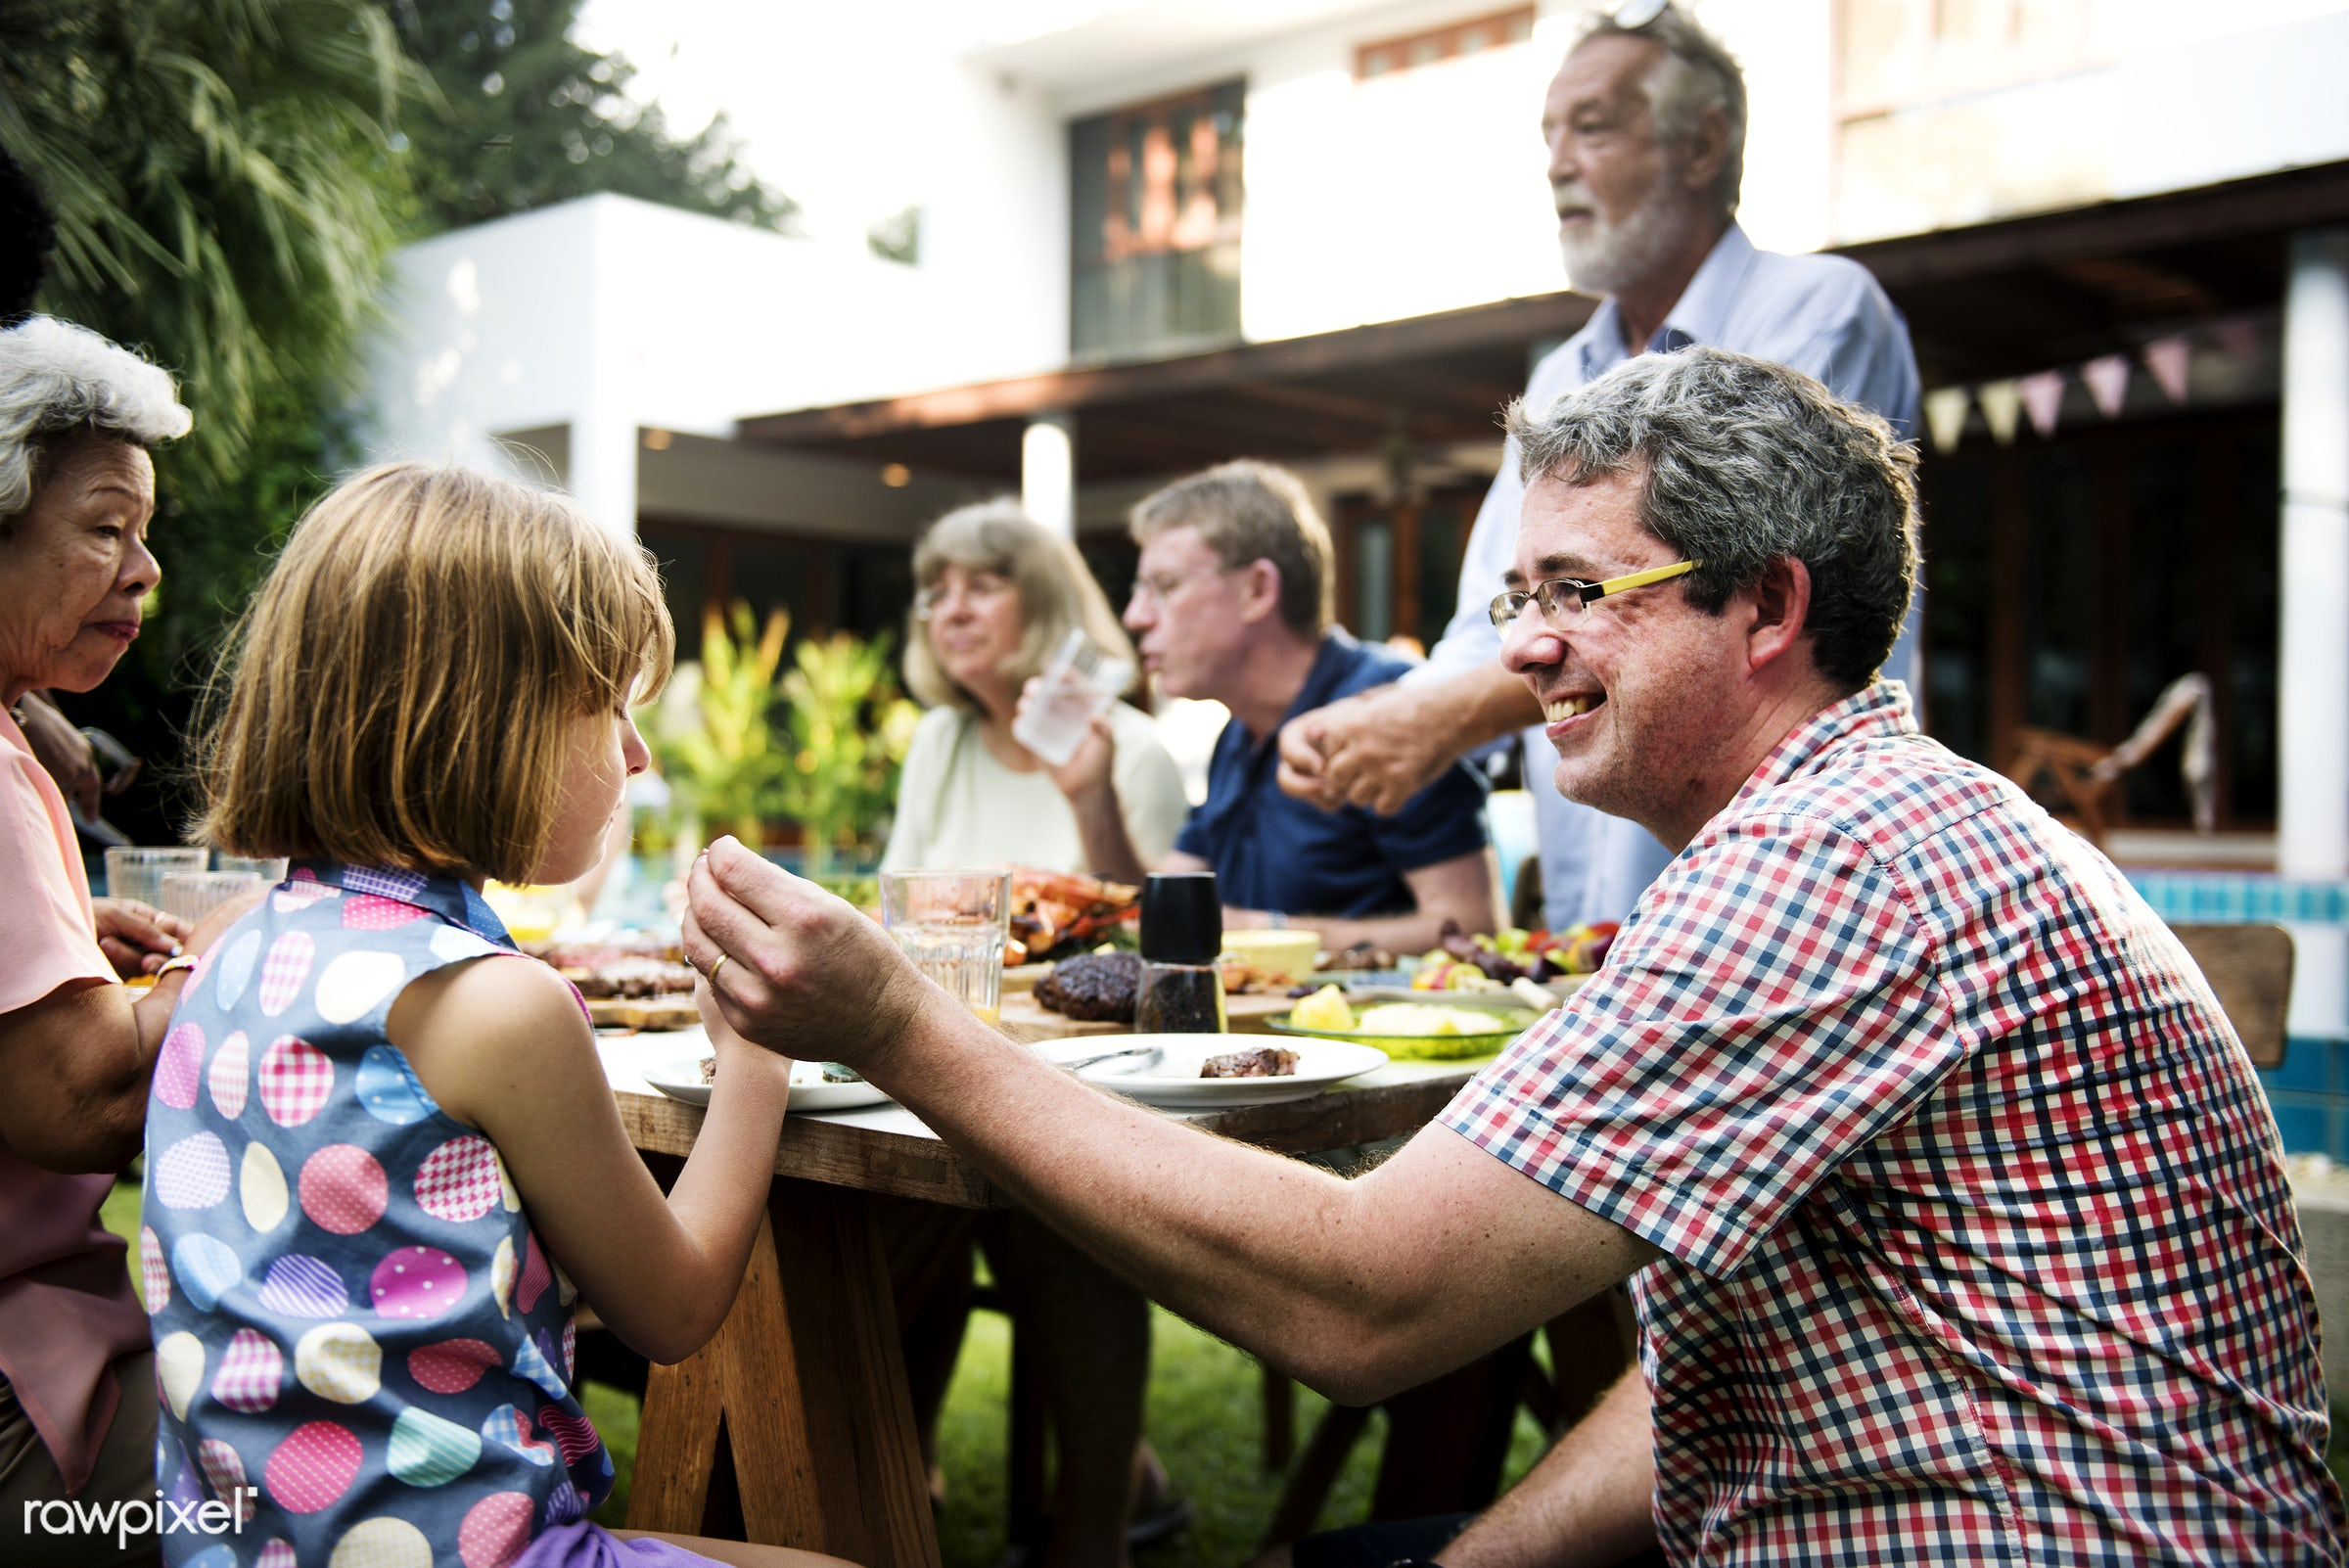 relax, daughter, together, caucasian, father, family, lunch, backyard, cheerful, smiling, closeup, meal, dad, enjoying,...